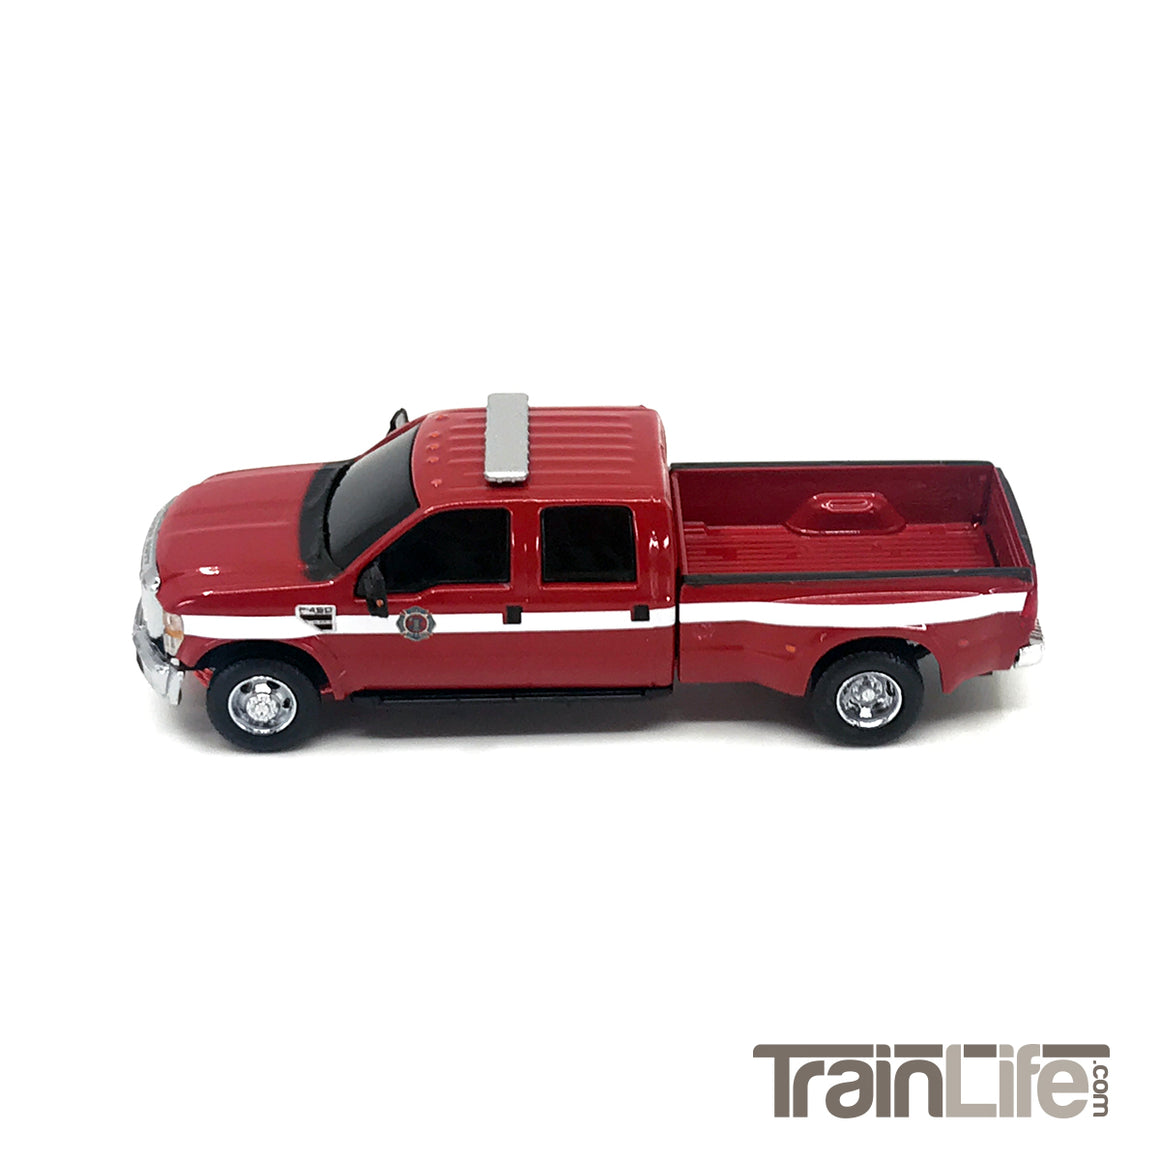 HO Scale: Lighted Ford F350 Crew Cab Dually Truck - Fire Department 'White Stripes'